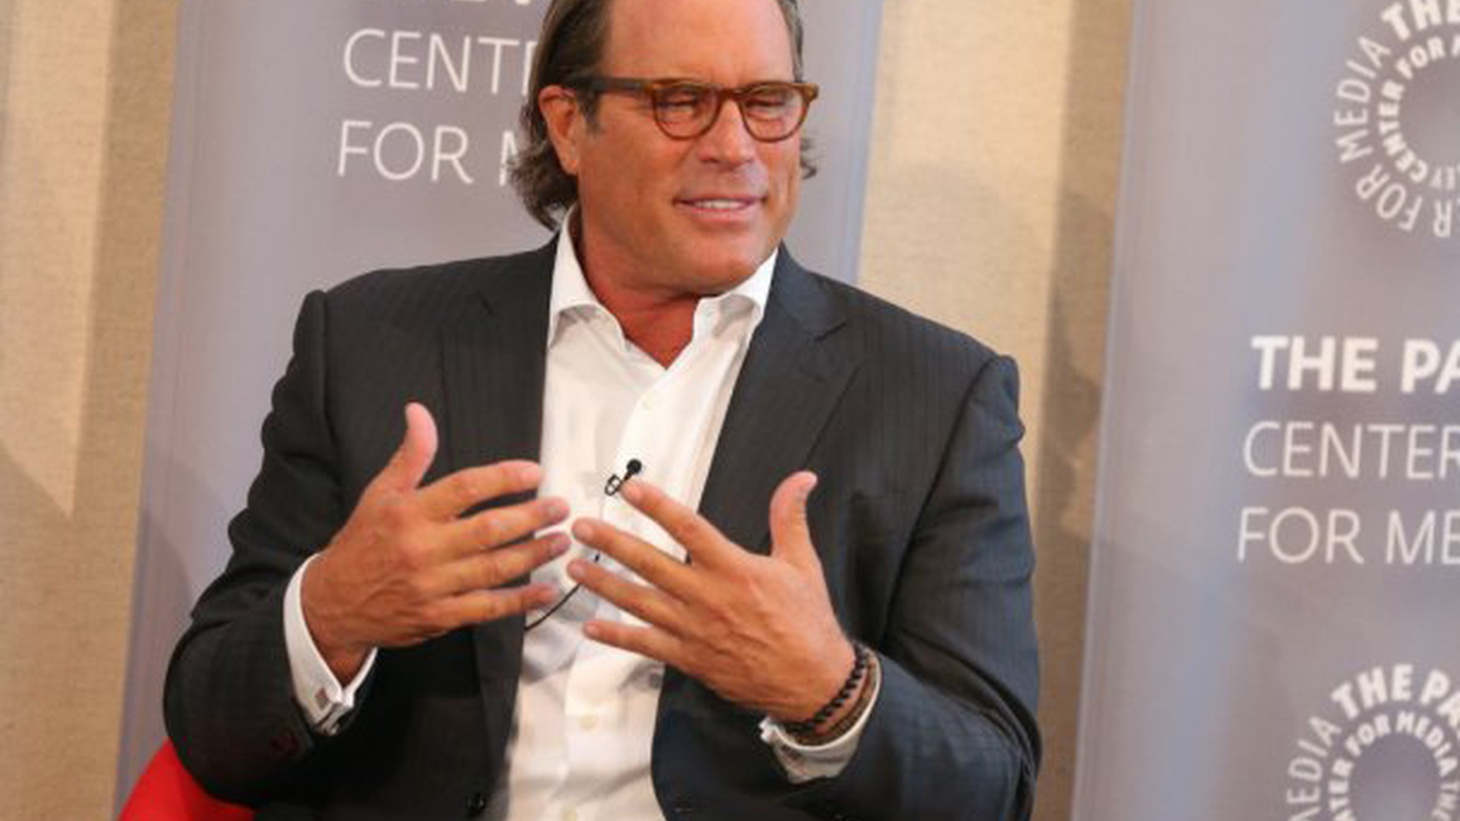 """In life, if you're not 100 percent in on something, you need to take a deep breath and figure it out."" That's what Steve Mosko told Michael Schneider during a conversation at the Paley Center, just two days after Mosko announced he would be leaving his job as chairman of Sony Pictures Television."